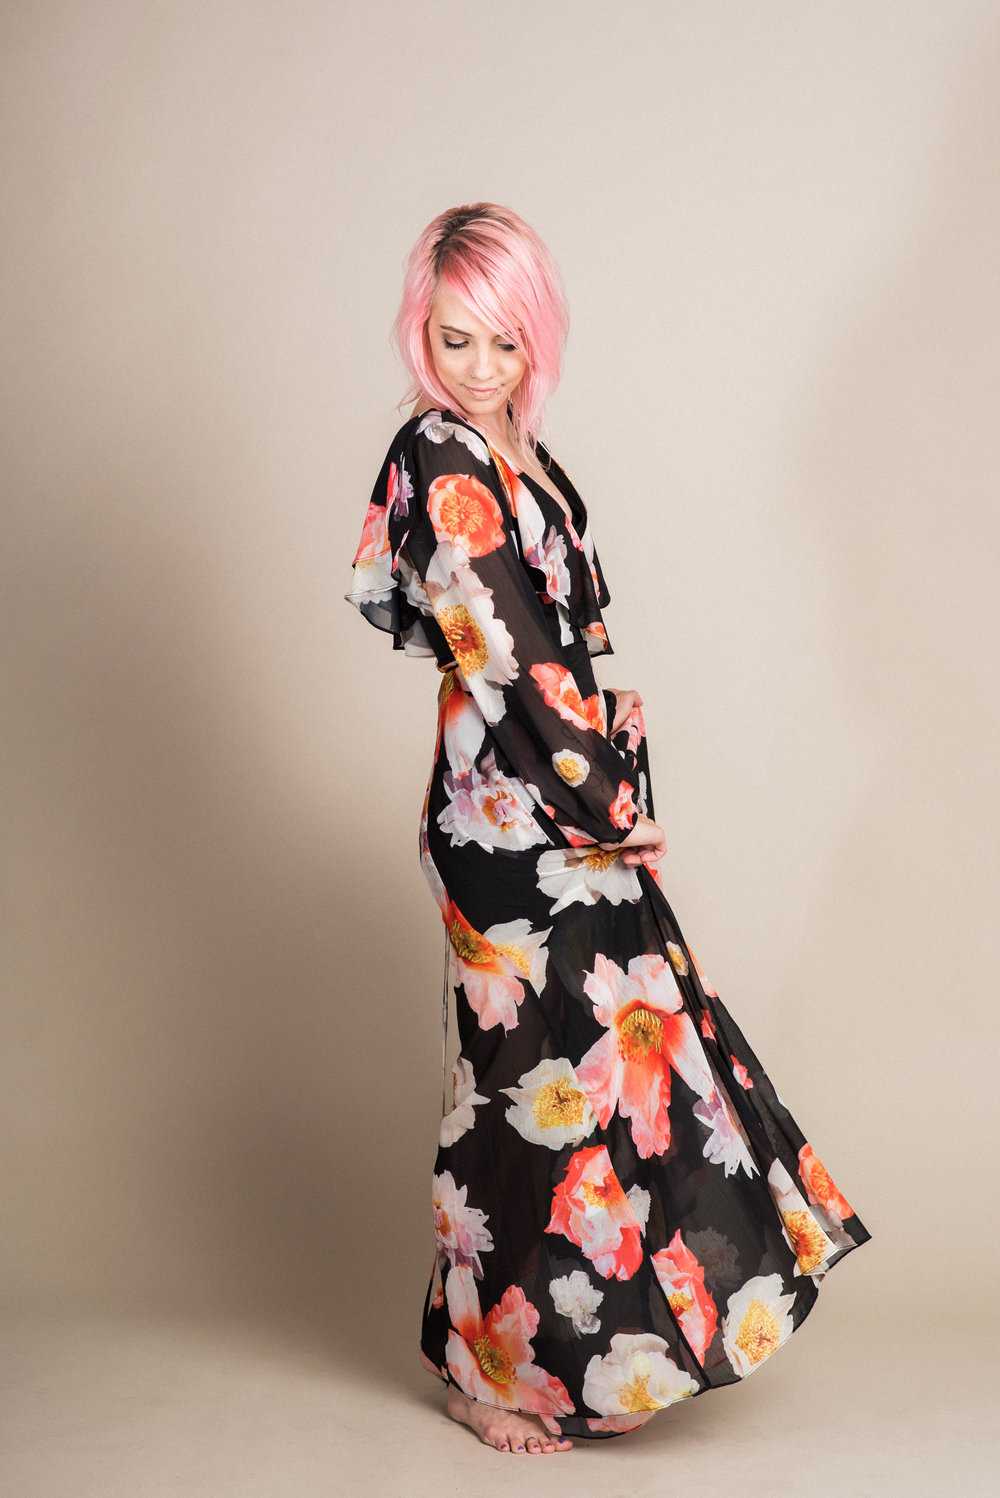 Floral Wrap Dress (XS/S) | Modeled by Laura